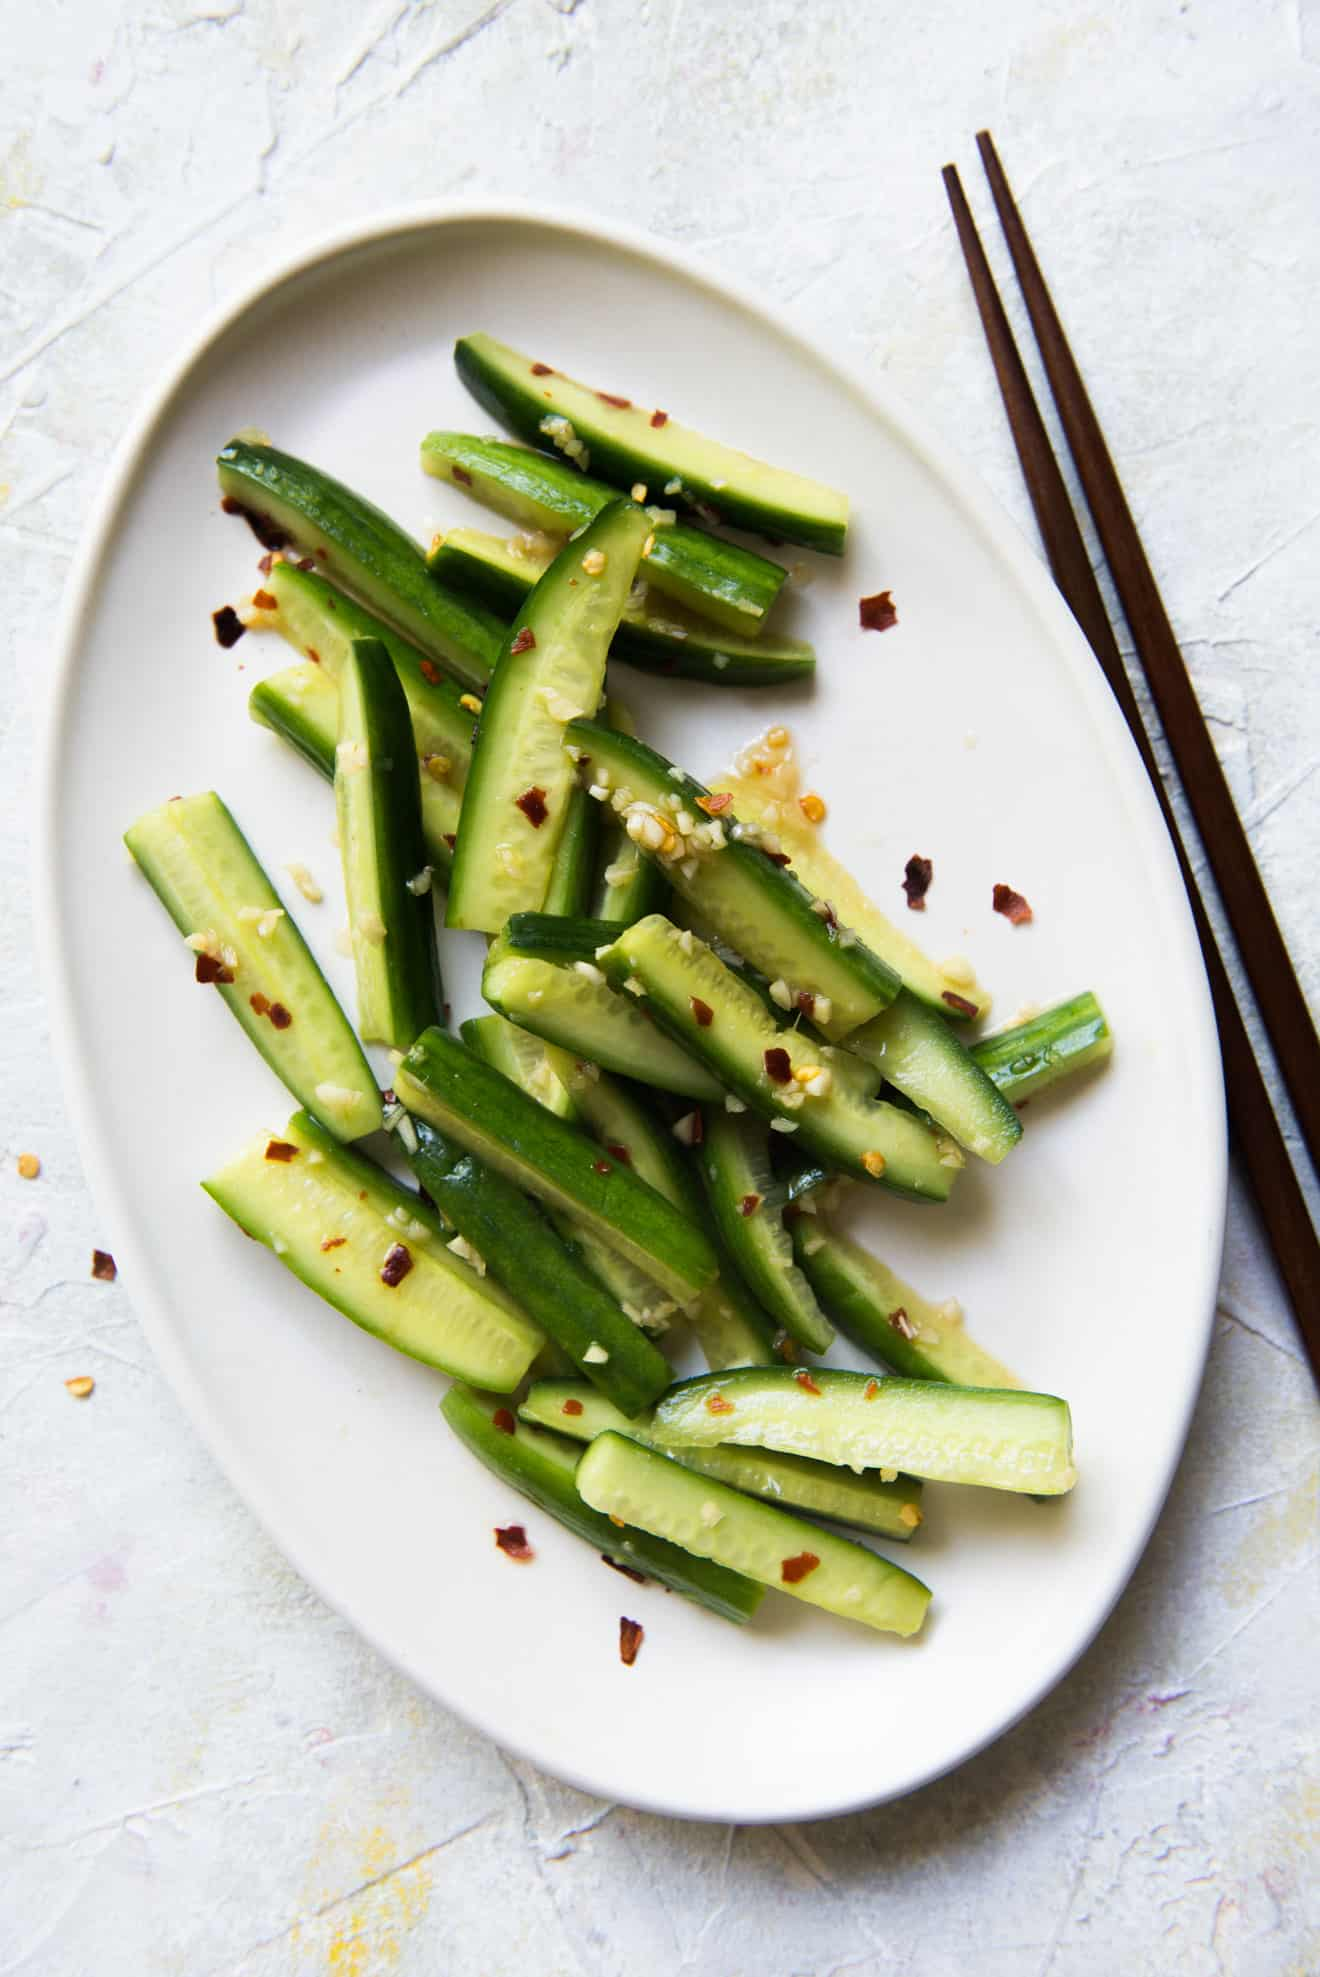 Garlicky & Spicy Cucumber Salad